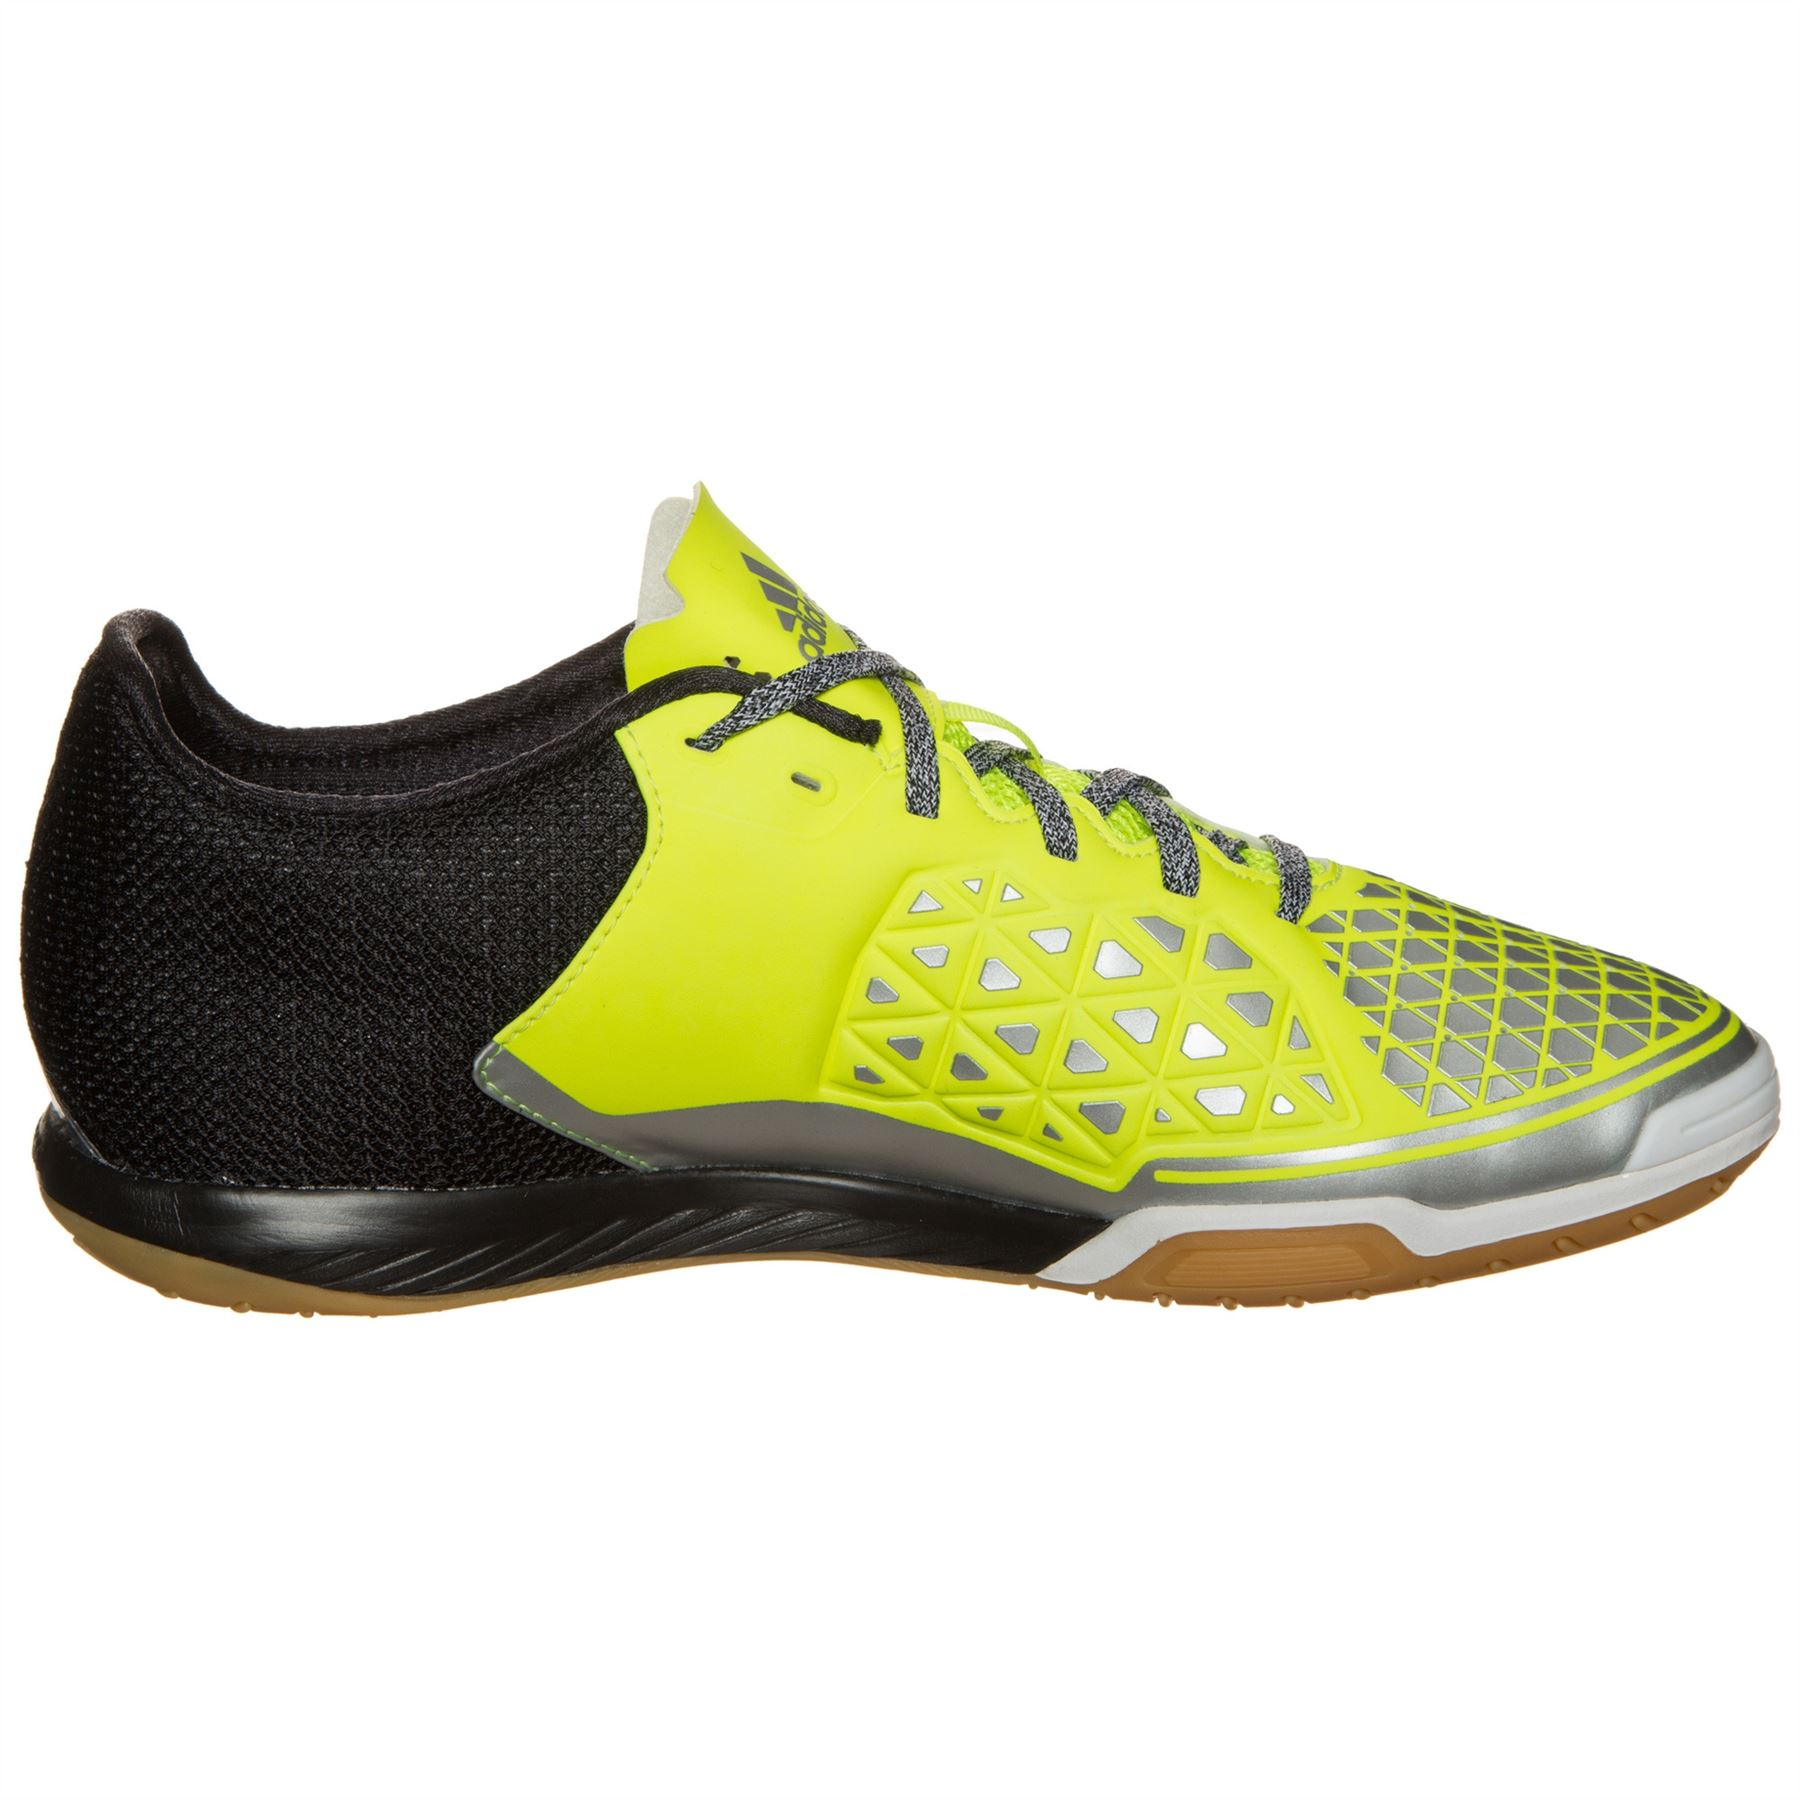 aee135cfd7b9 ... adidas Ace 16.2 Court Indoor Football Shoes Mens Yel Blk Futsal Soccer  Trainers ...